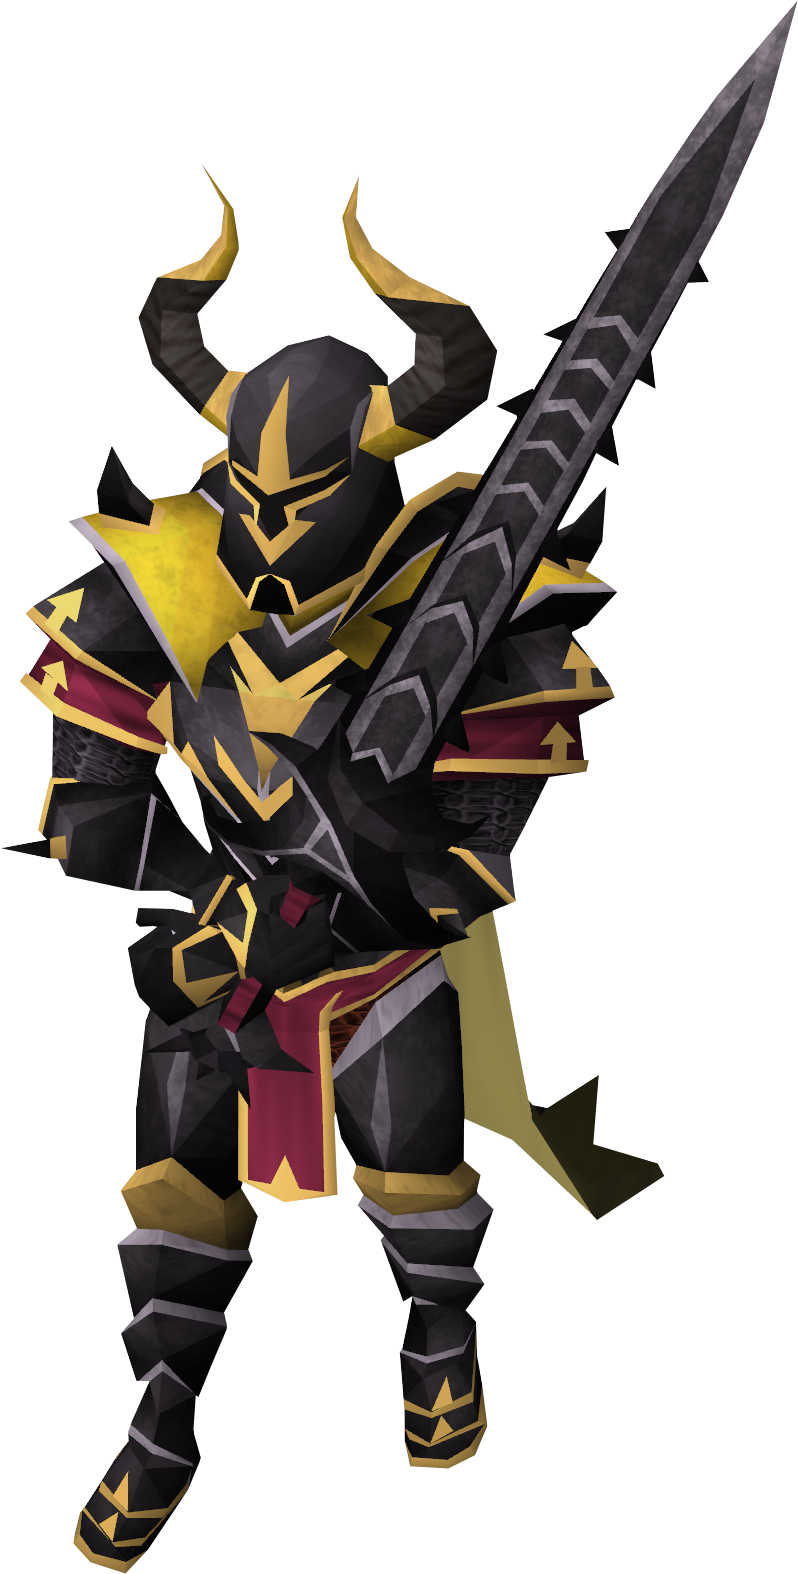 Dragon Armor Rs3 : Go for the classic medium helm, square shield setup or let the full helm and kiteshield do the talking.